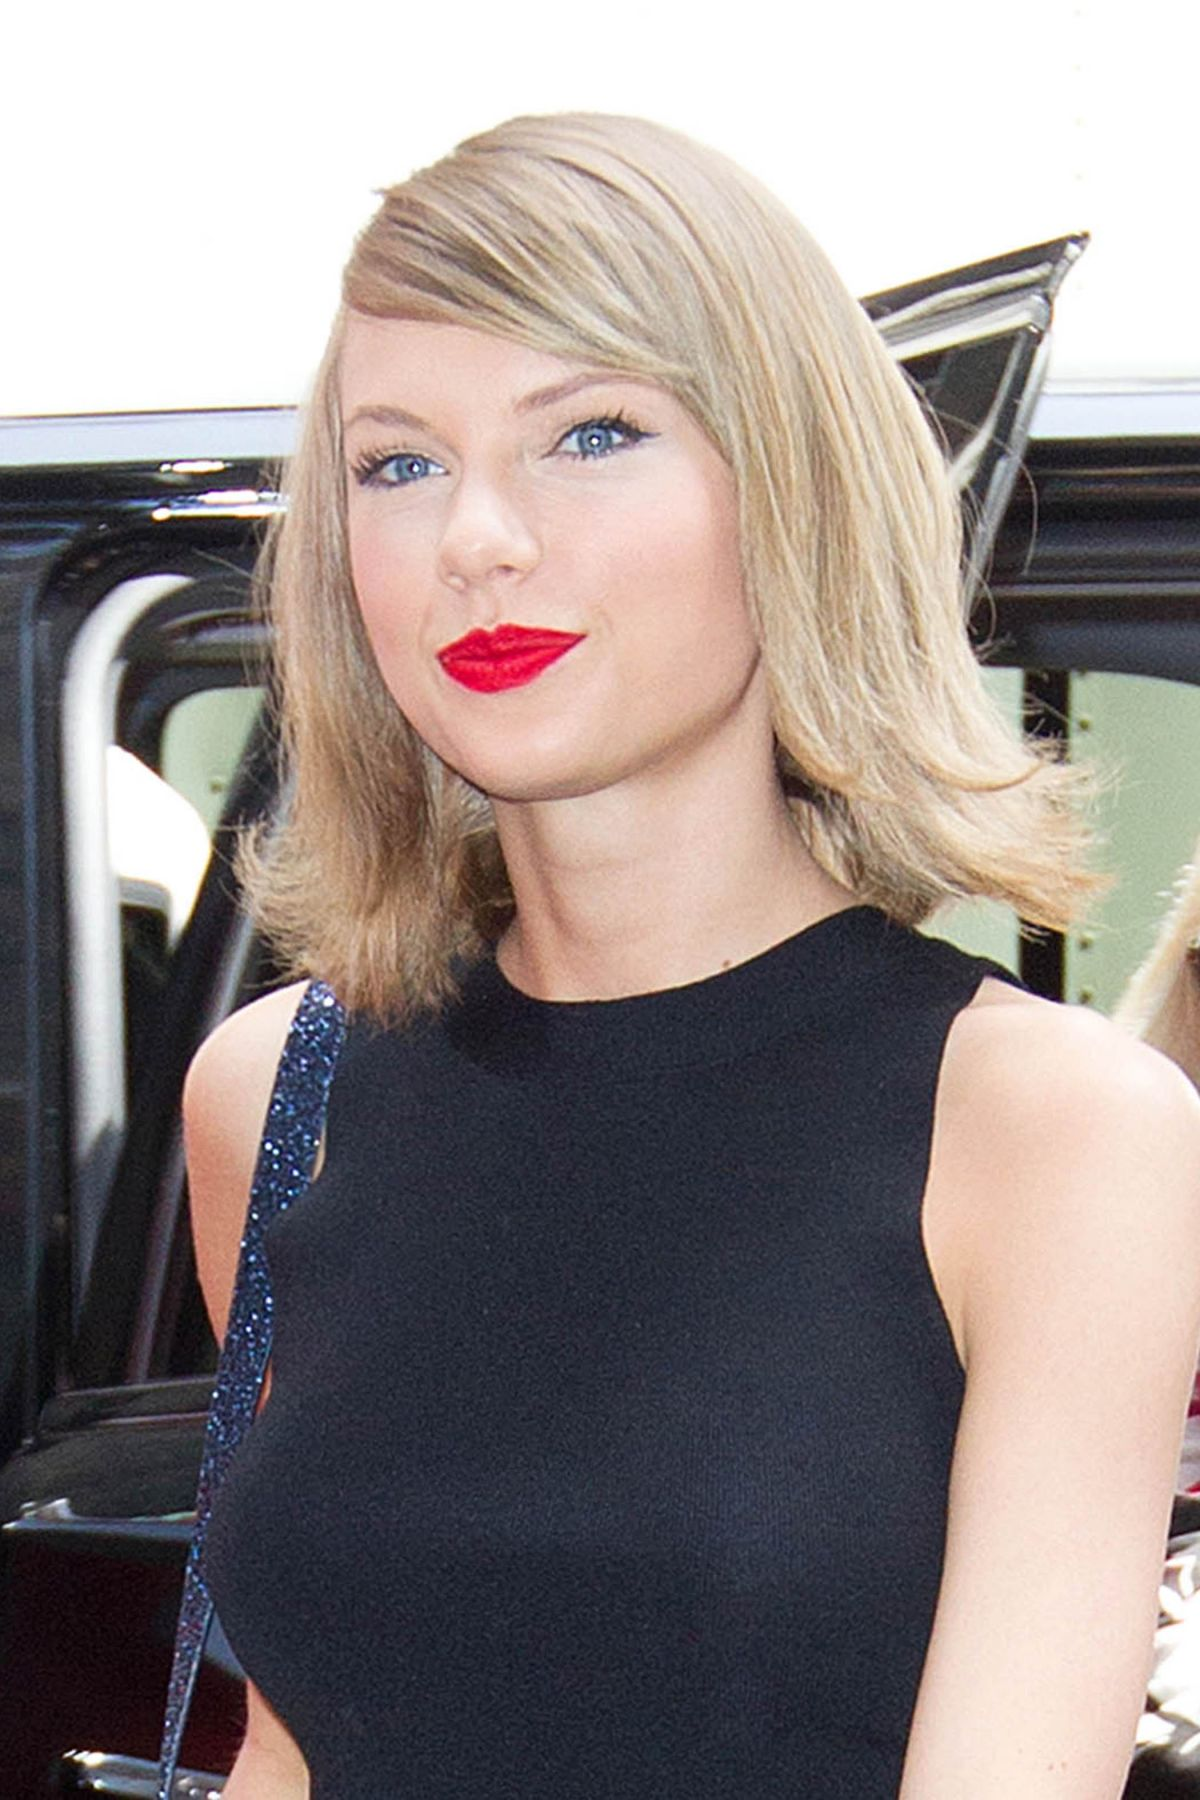 Taylor Swift Out In New York City - Celebzz Taylor Swift